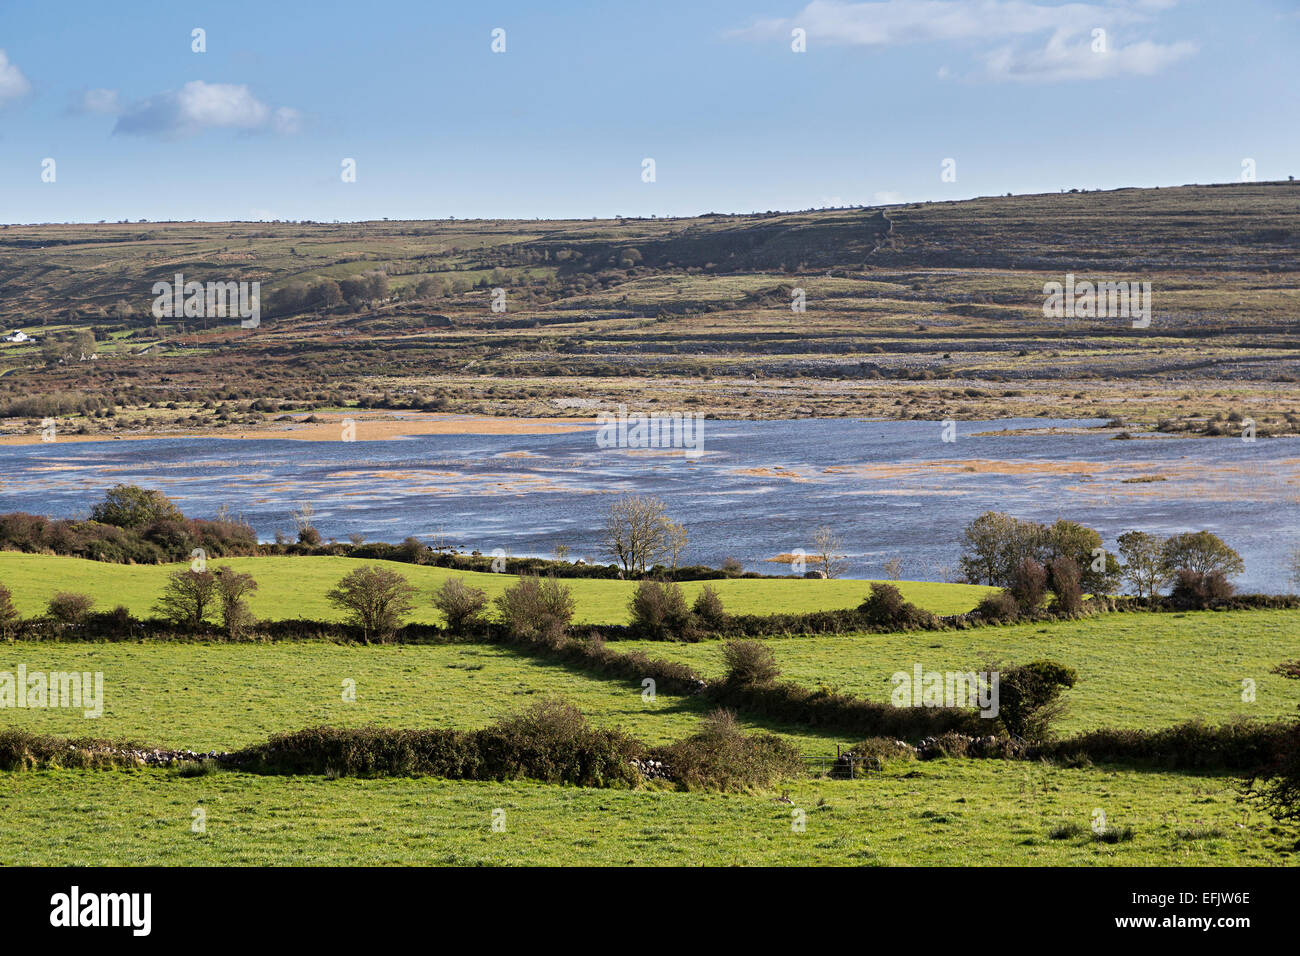 Carran Turlough lac saisonnier, le Burren, comté de Clare, Irlande Photo Stock